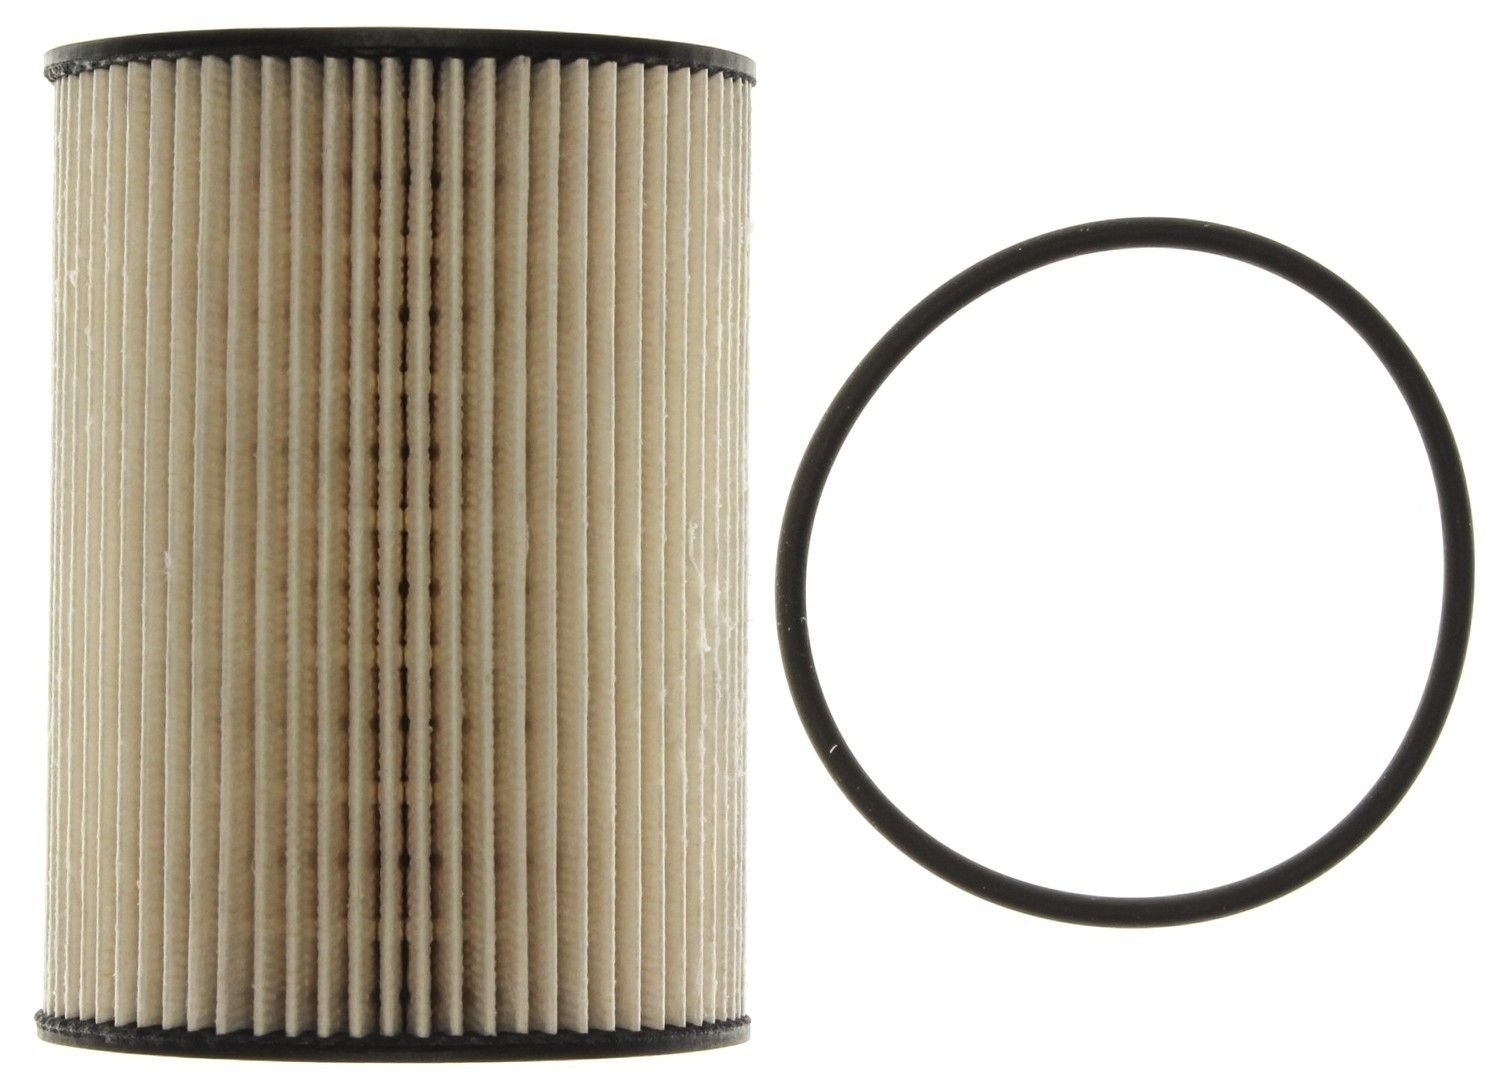 2005 Volkswagen Jetta Fuel Filter 4 Cyl 1.9L (Mahle KX 228D ECO) Filter  Type Fuel Filter Cartridge From Chassis # 1K6 817 801 .